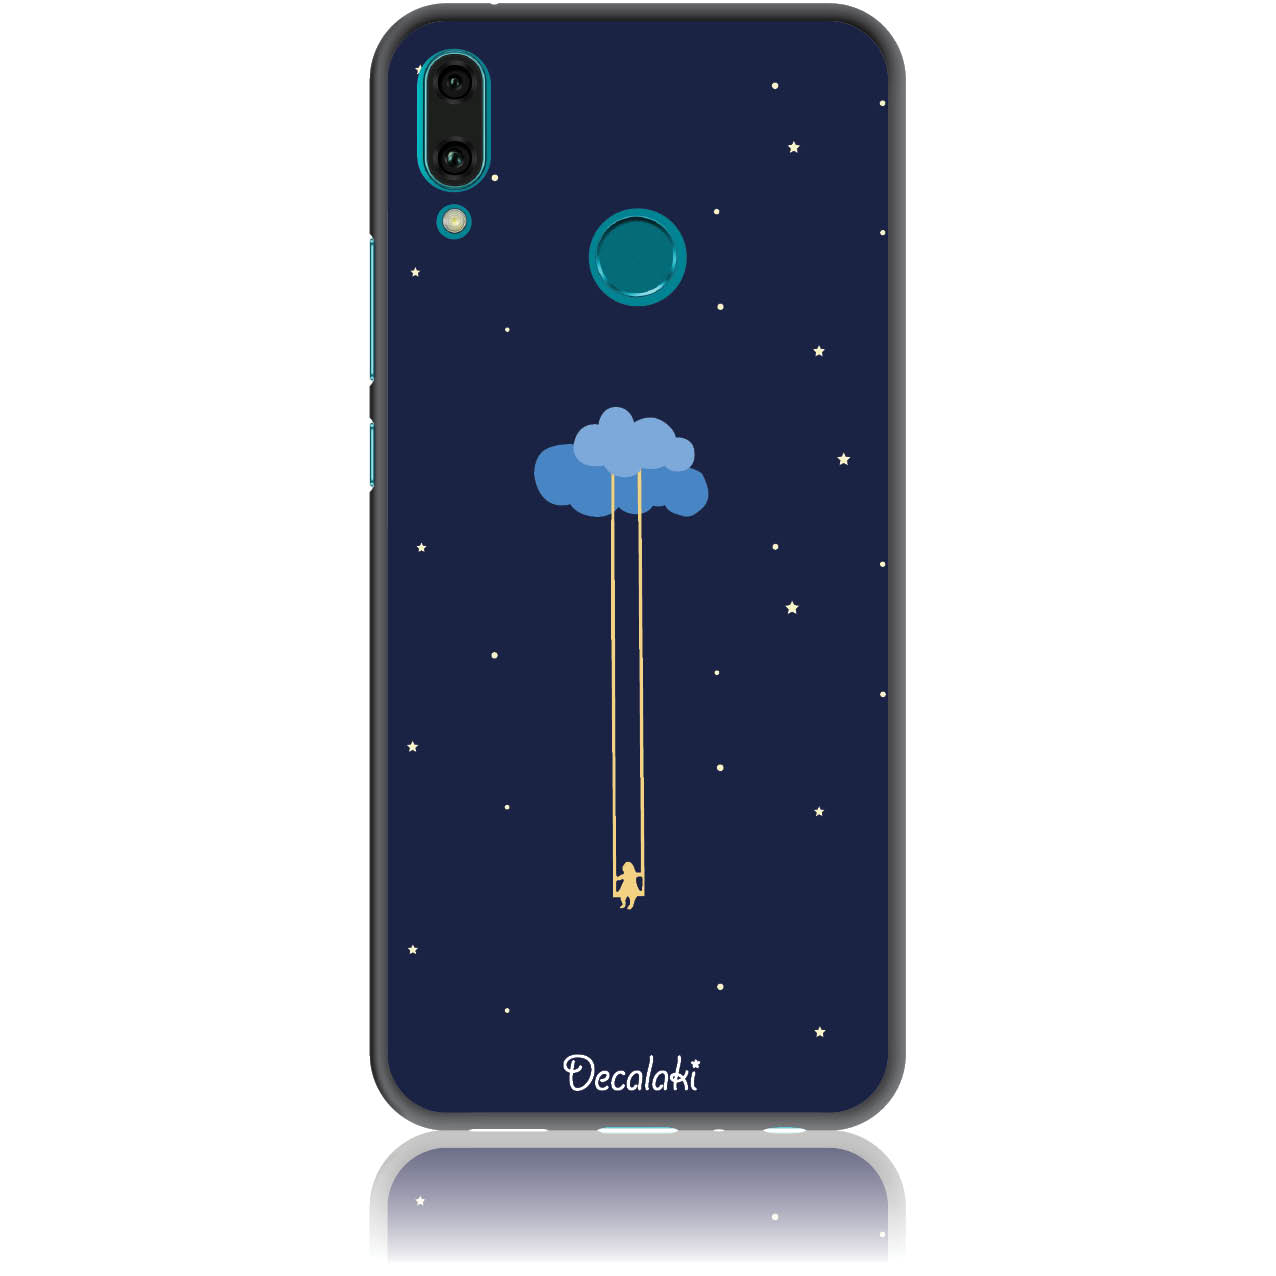 Happiness Is A State Of Mind Phone Case Design 50312  -  Huawei Enjoy 9 Plus  -  Soft Tpu Case